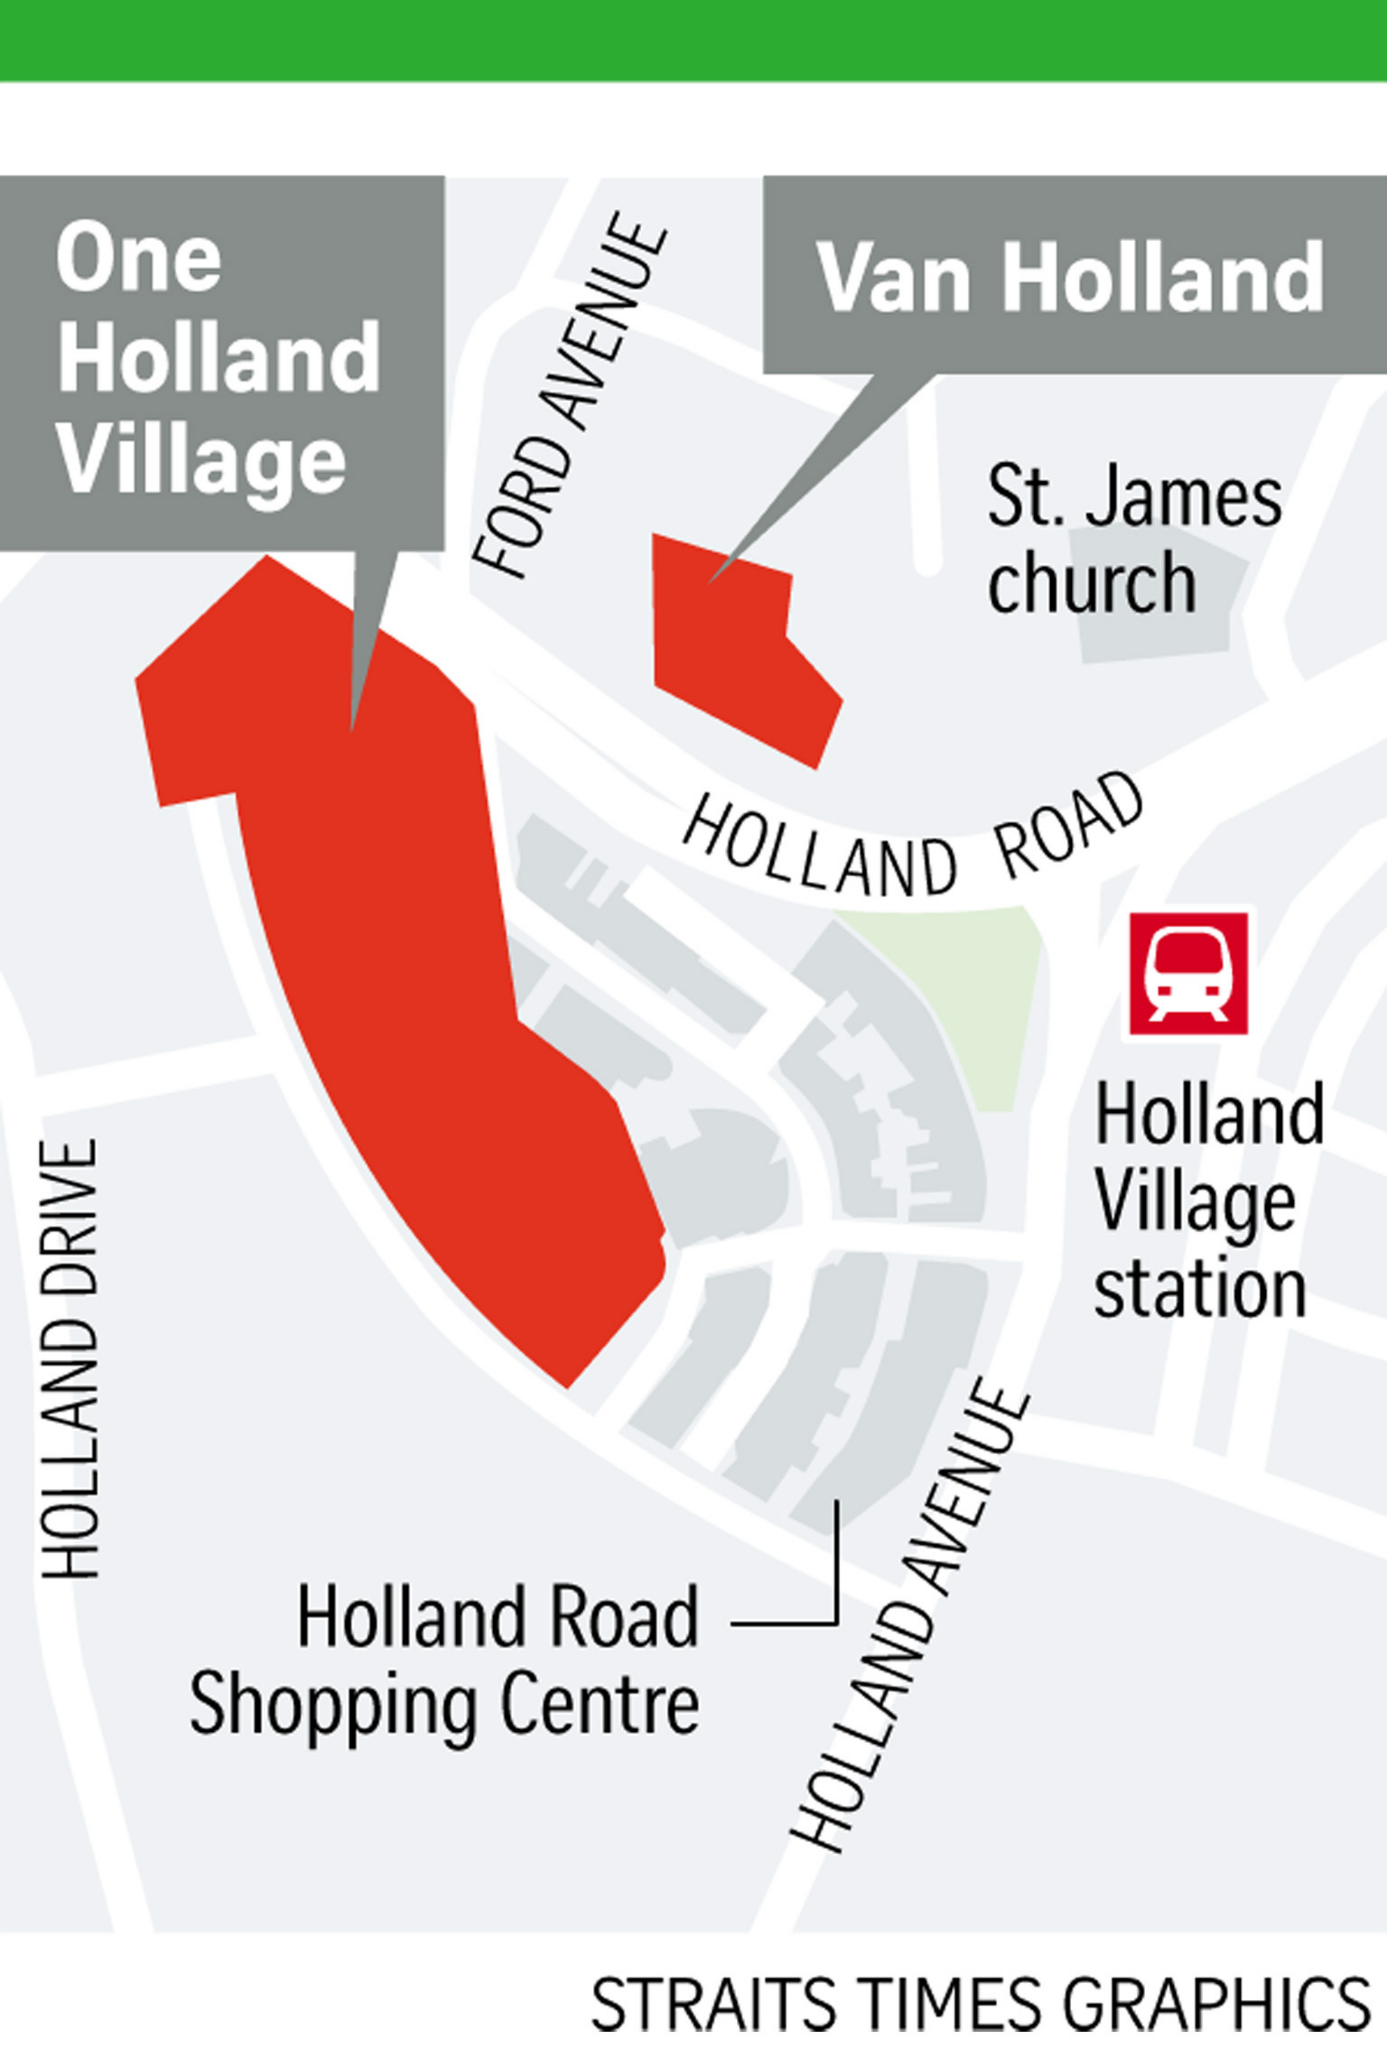 Van Holland location